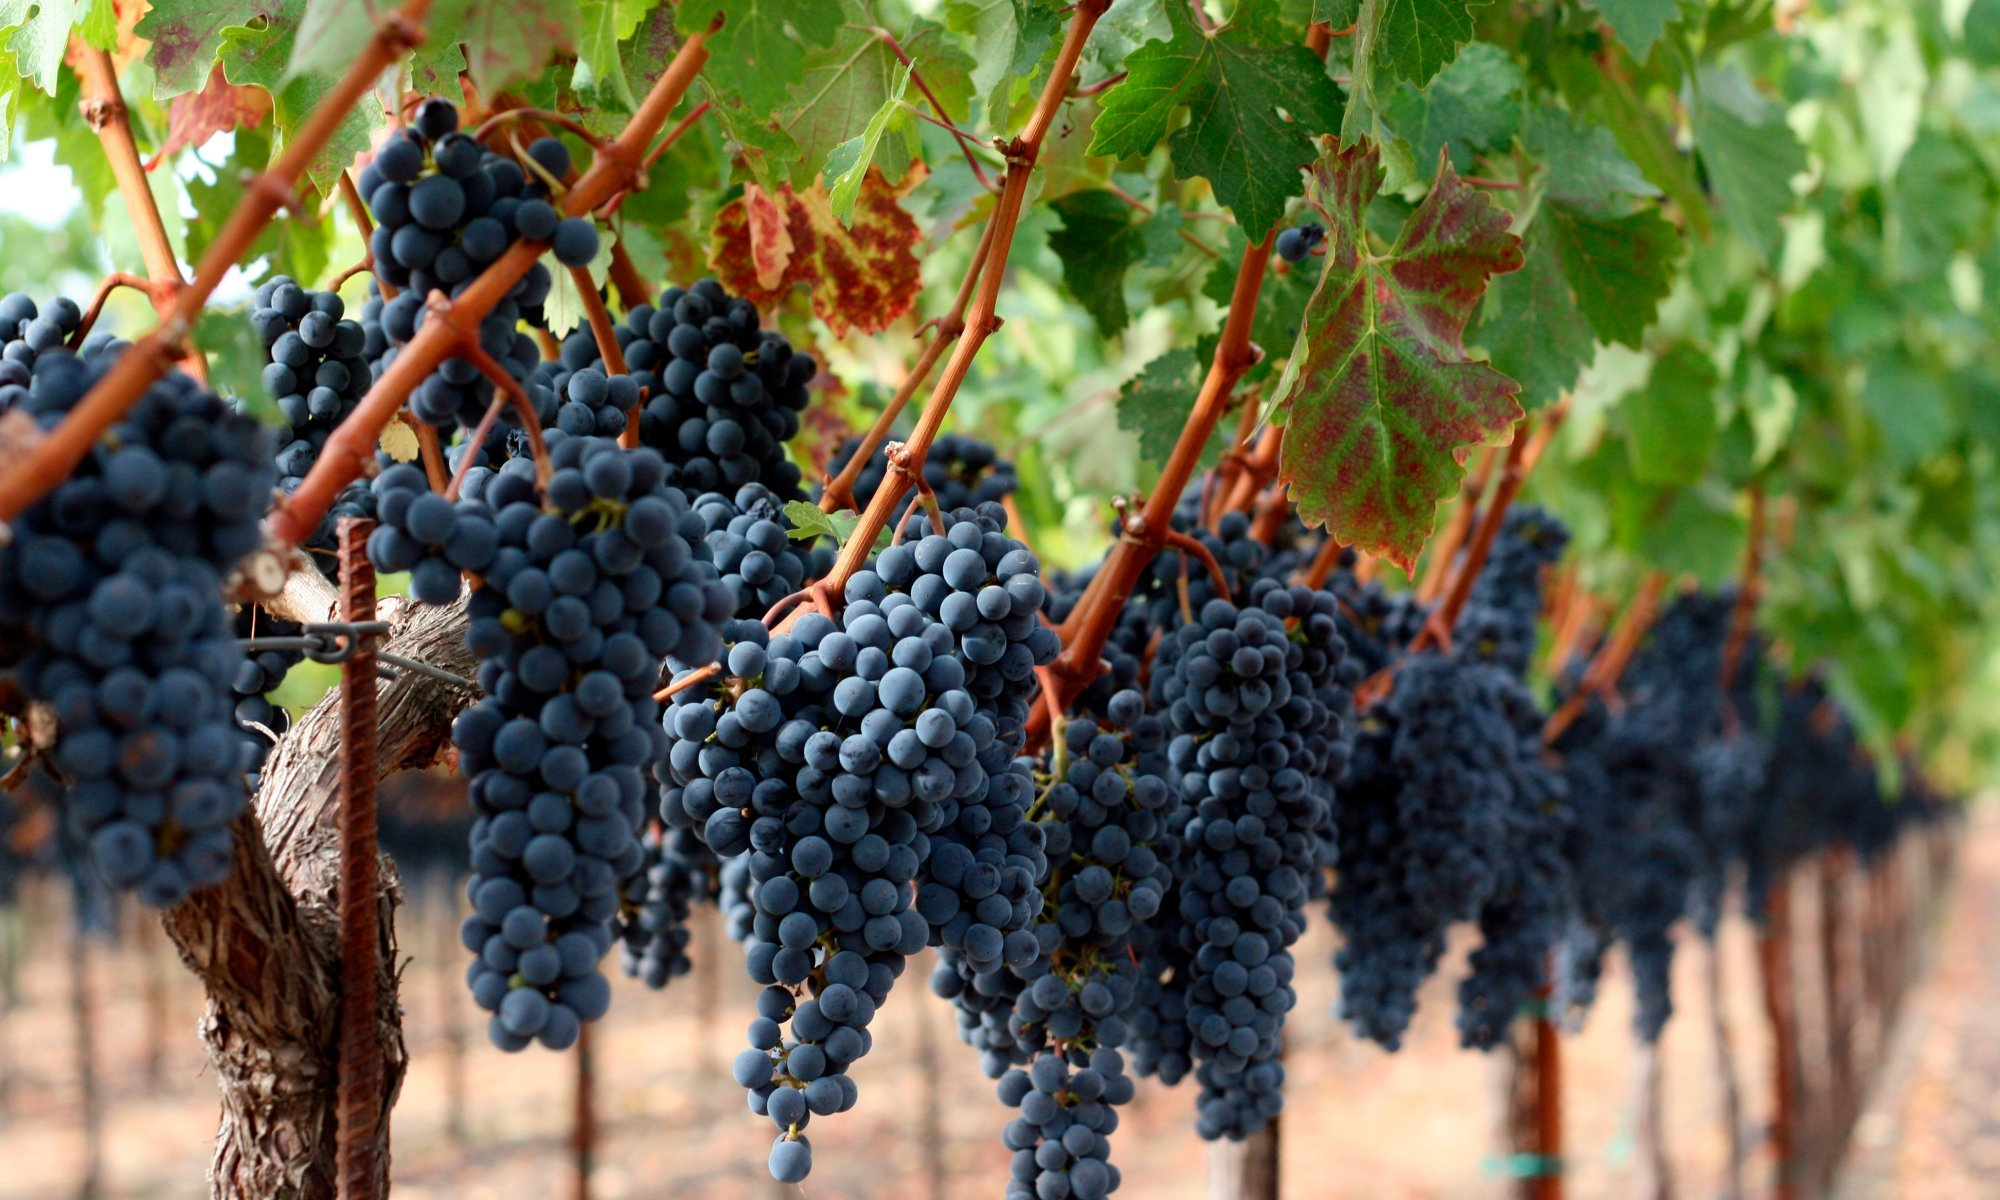 Grapes on the vine at a Napa Valley vineyard.